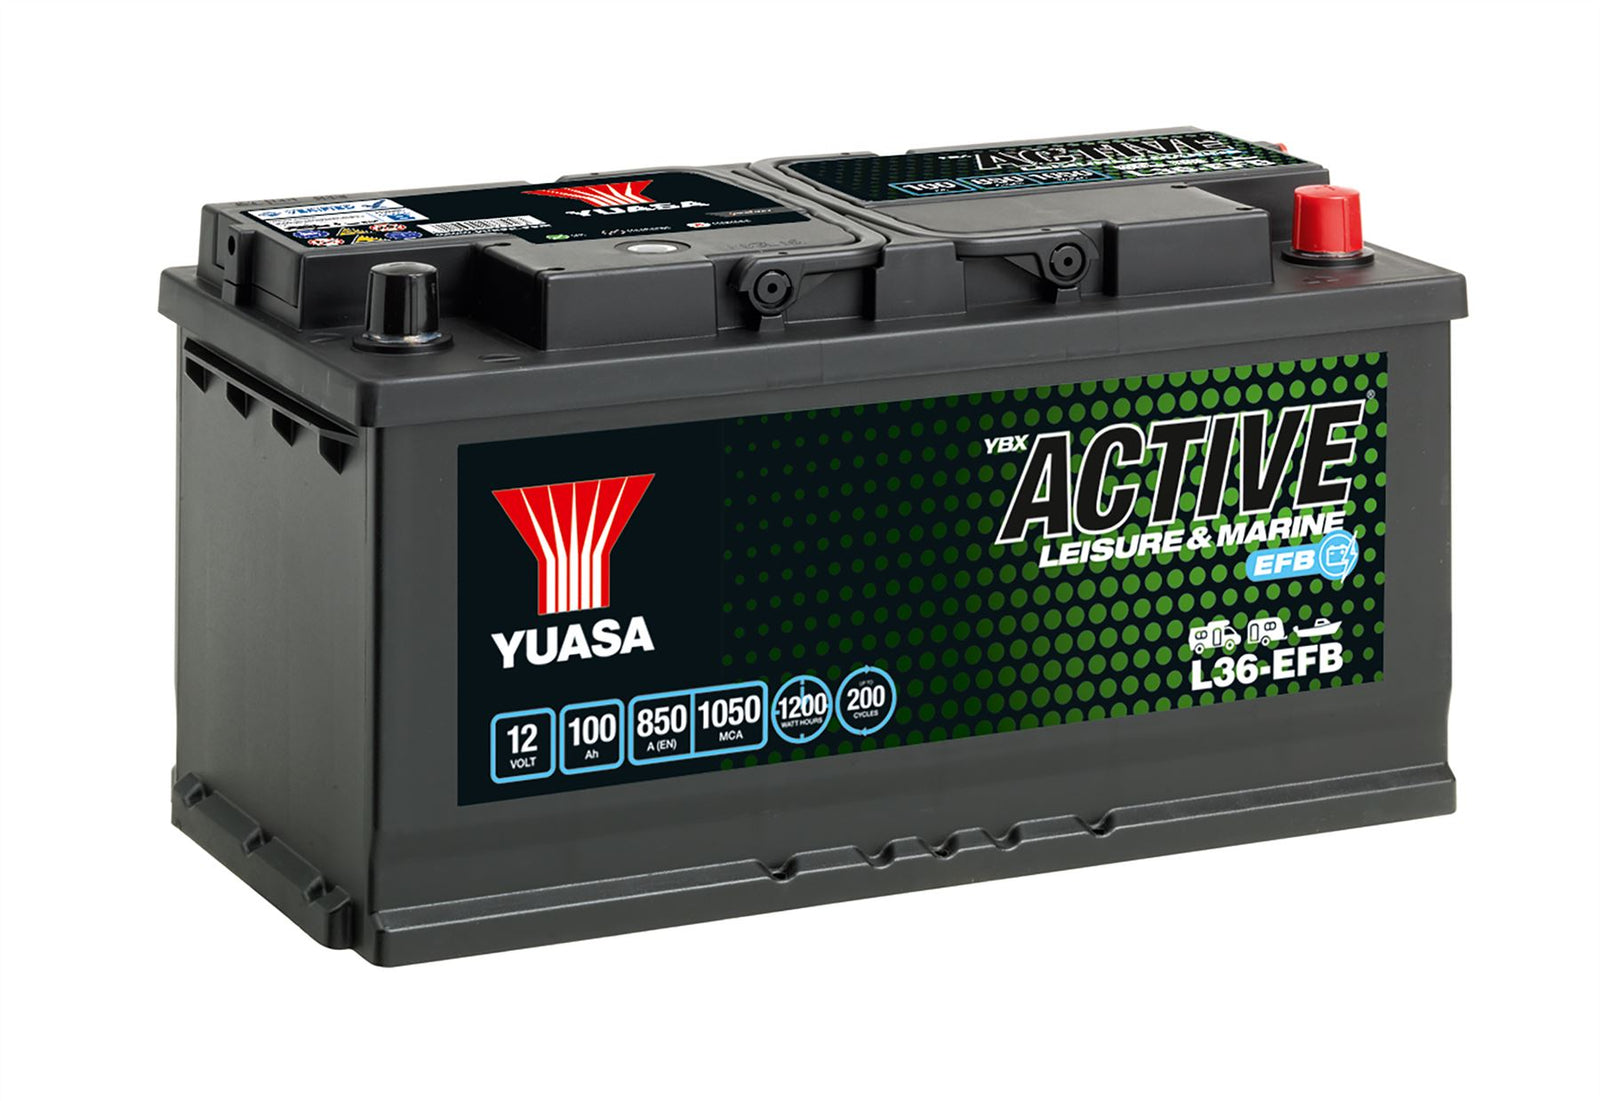 Yuasa L36-EFB Active Leisure & Marine EFB Battery